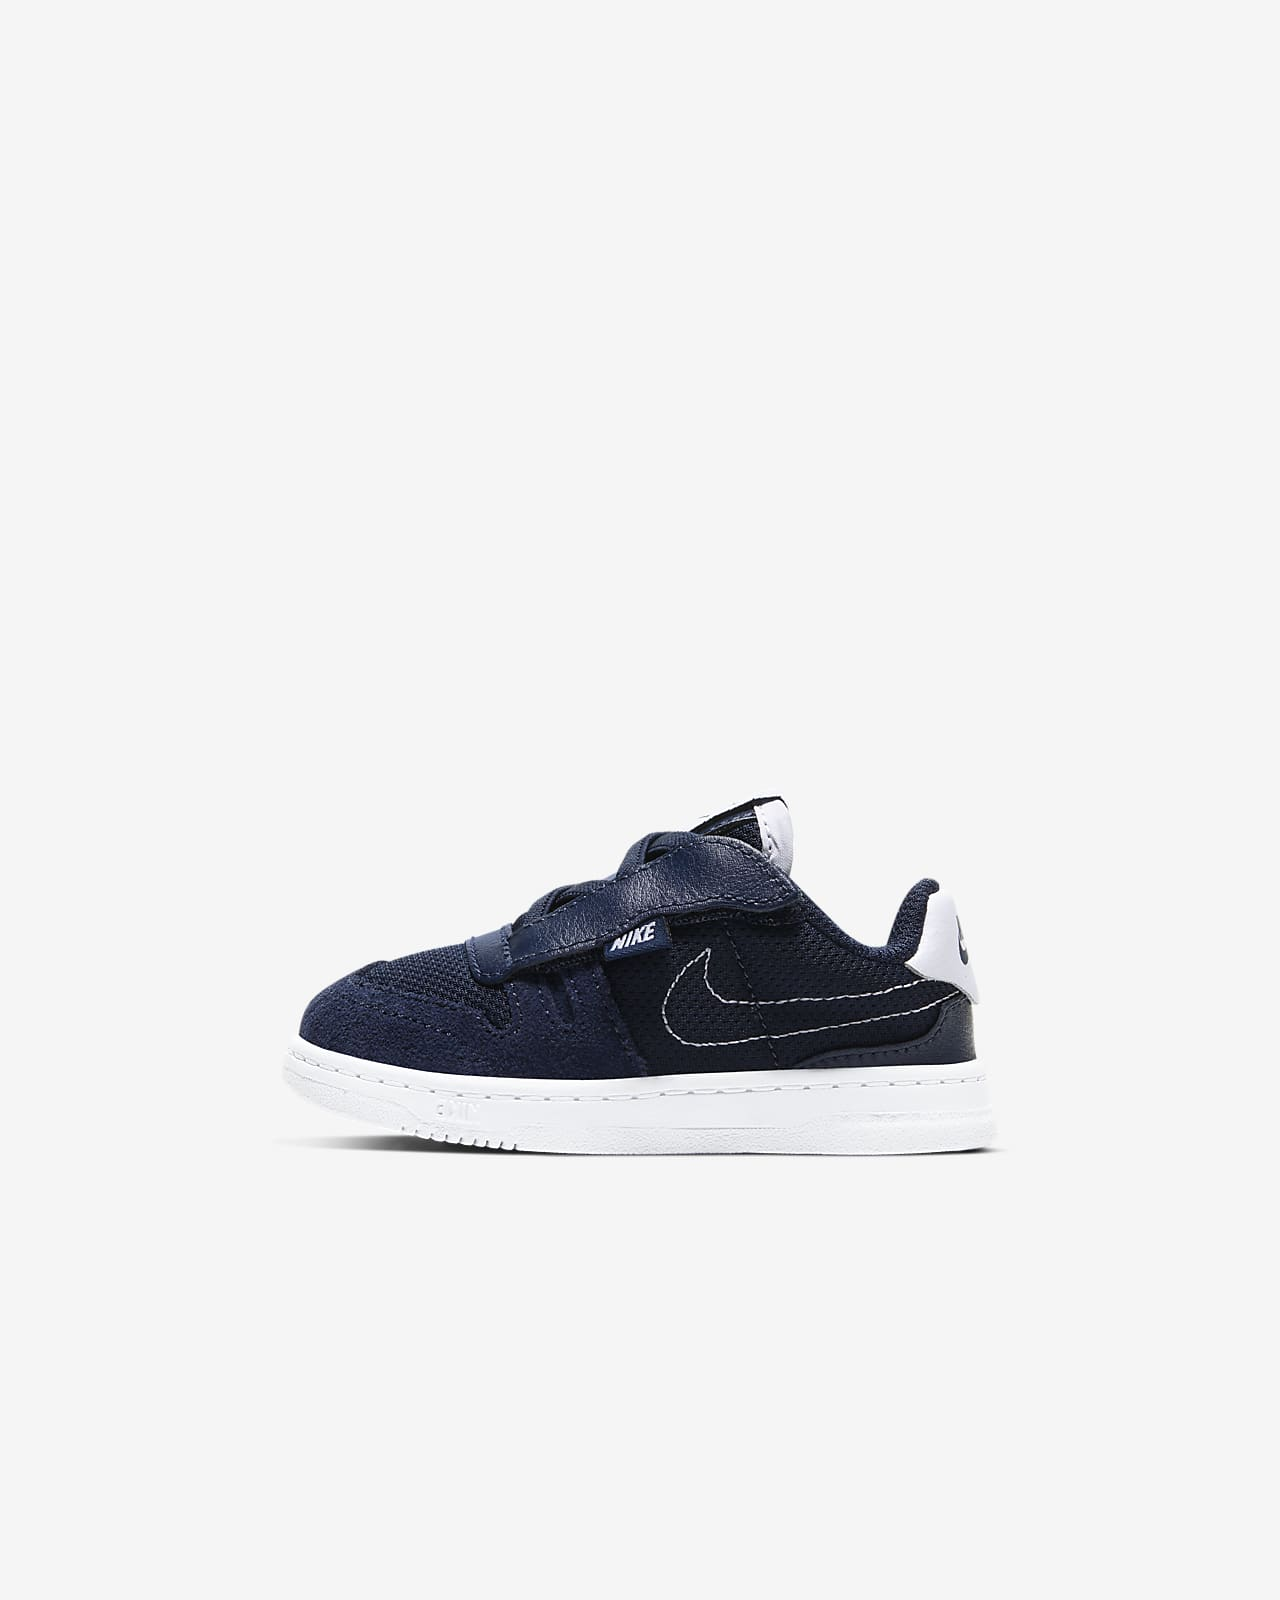 Nike Squash-Type Baby and Toddler Shoe